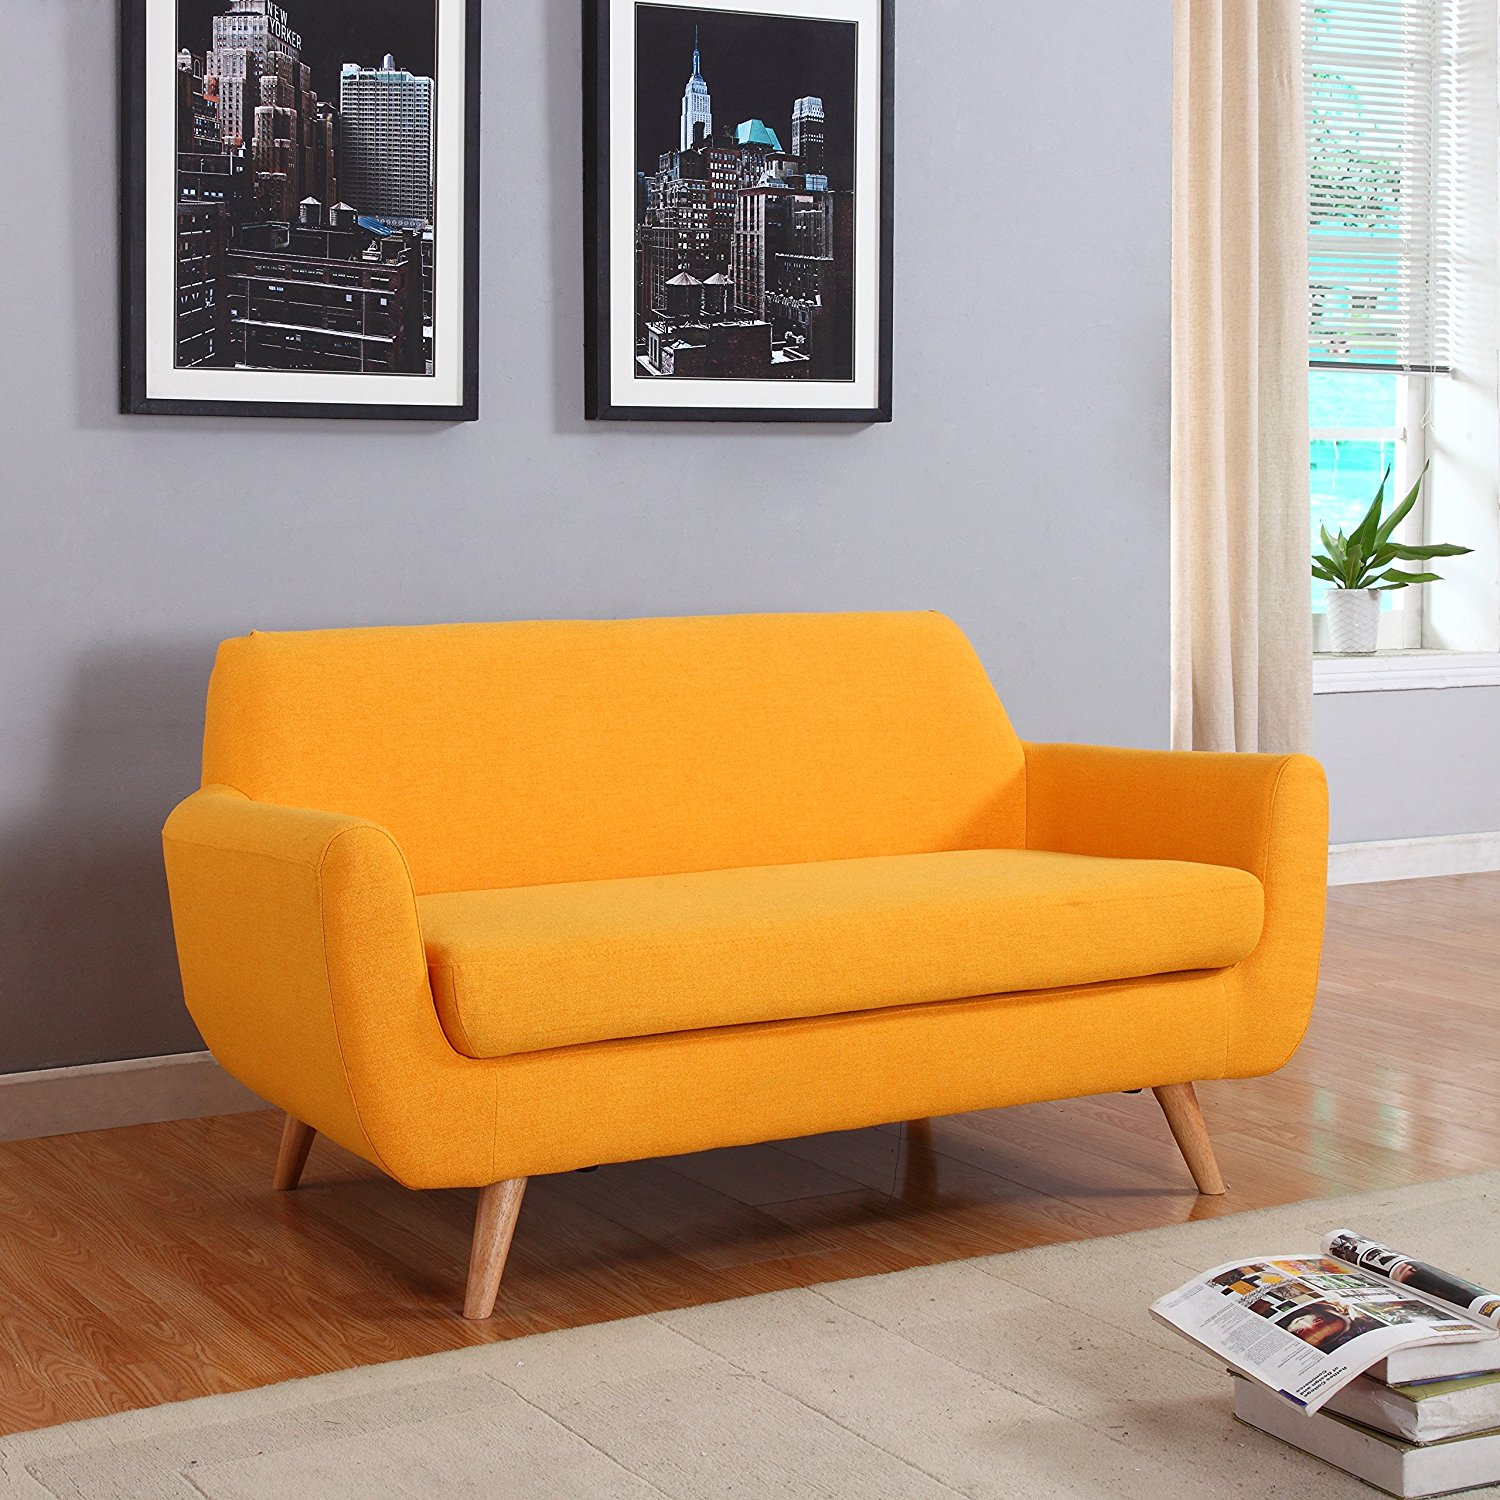 Gelbe Möbel Yellow Sofa: A Sunshine Piece For Your Living Room!